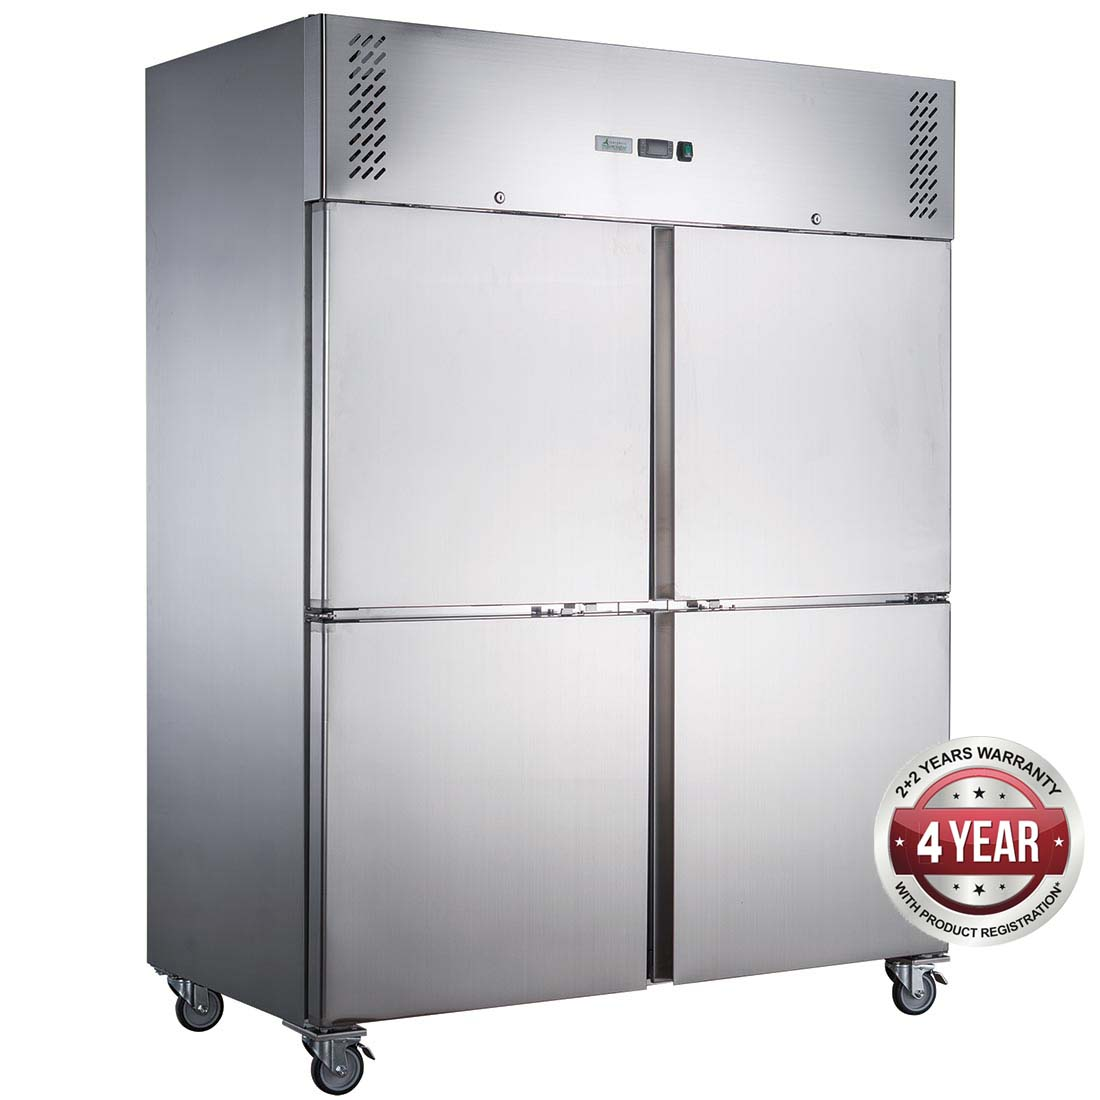 FED-X S/S Four Door Upright Fridge - XURC1200S2V